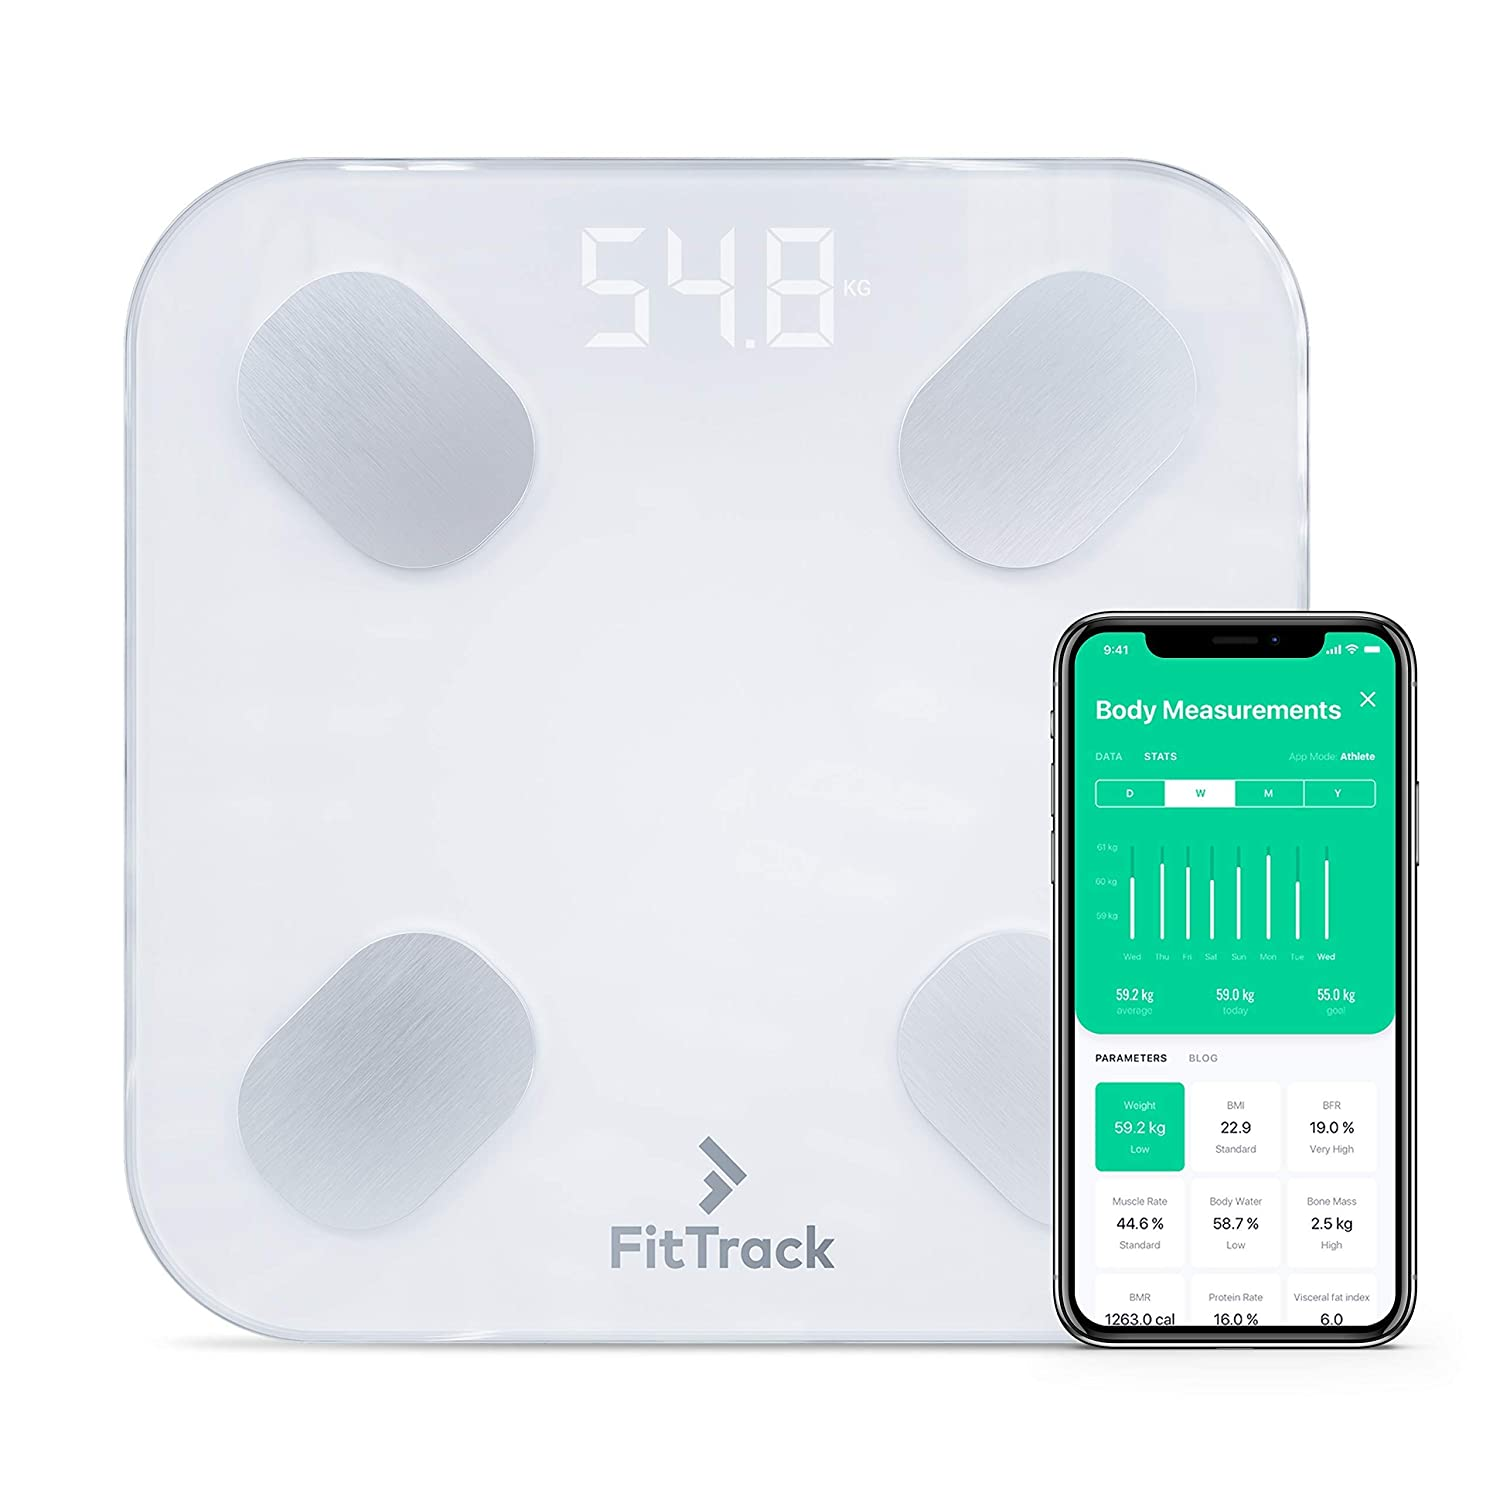 FitTrack Dara Smart BMI Digital Scale - Measure Weight and Body Fat - Most Accurate Bluetooth Glass Bathroom Scale: Health & Personal Care